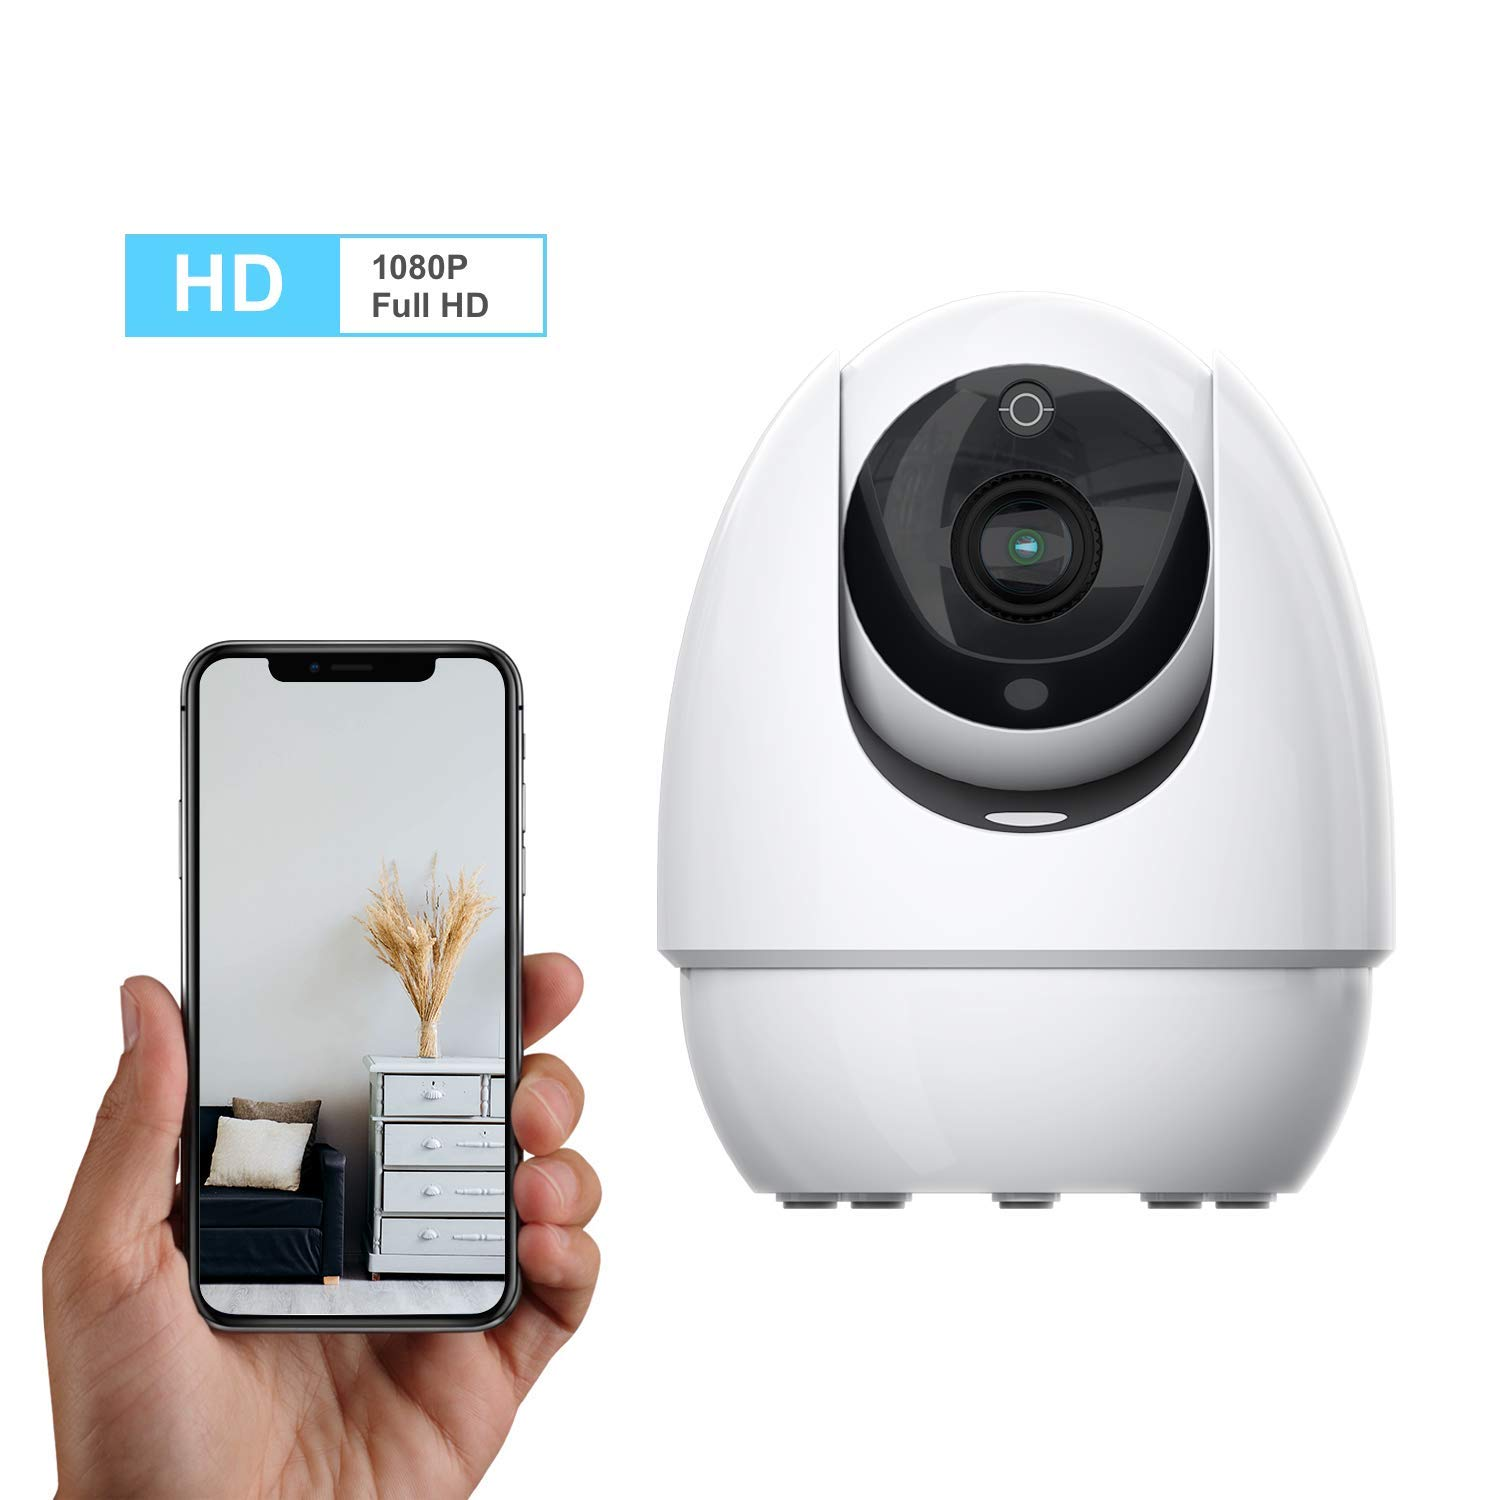 Home Security 1080P Camera, Wonbo Wireless Surveillance Pet Baby Dog Monitor IP Camera with 2.4G WiFi Two-Way Audio IR Night Vision (Android/iOS)